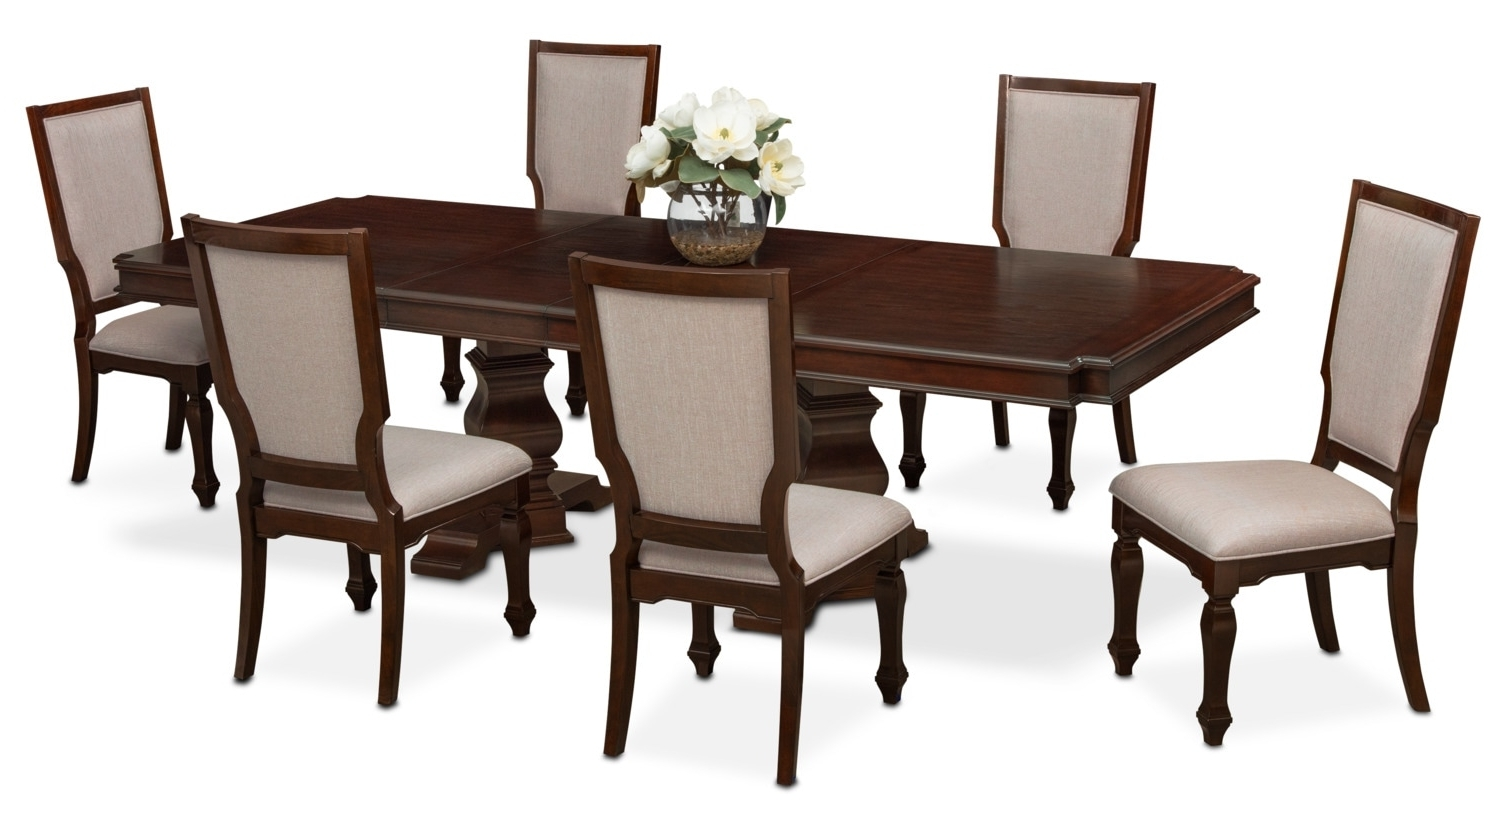 Famous Vienna Dining Tables Intended For Vienna Dining Table And 6 Upholstered Side Chairs – Merlot (View 2 of 25)